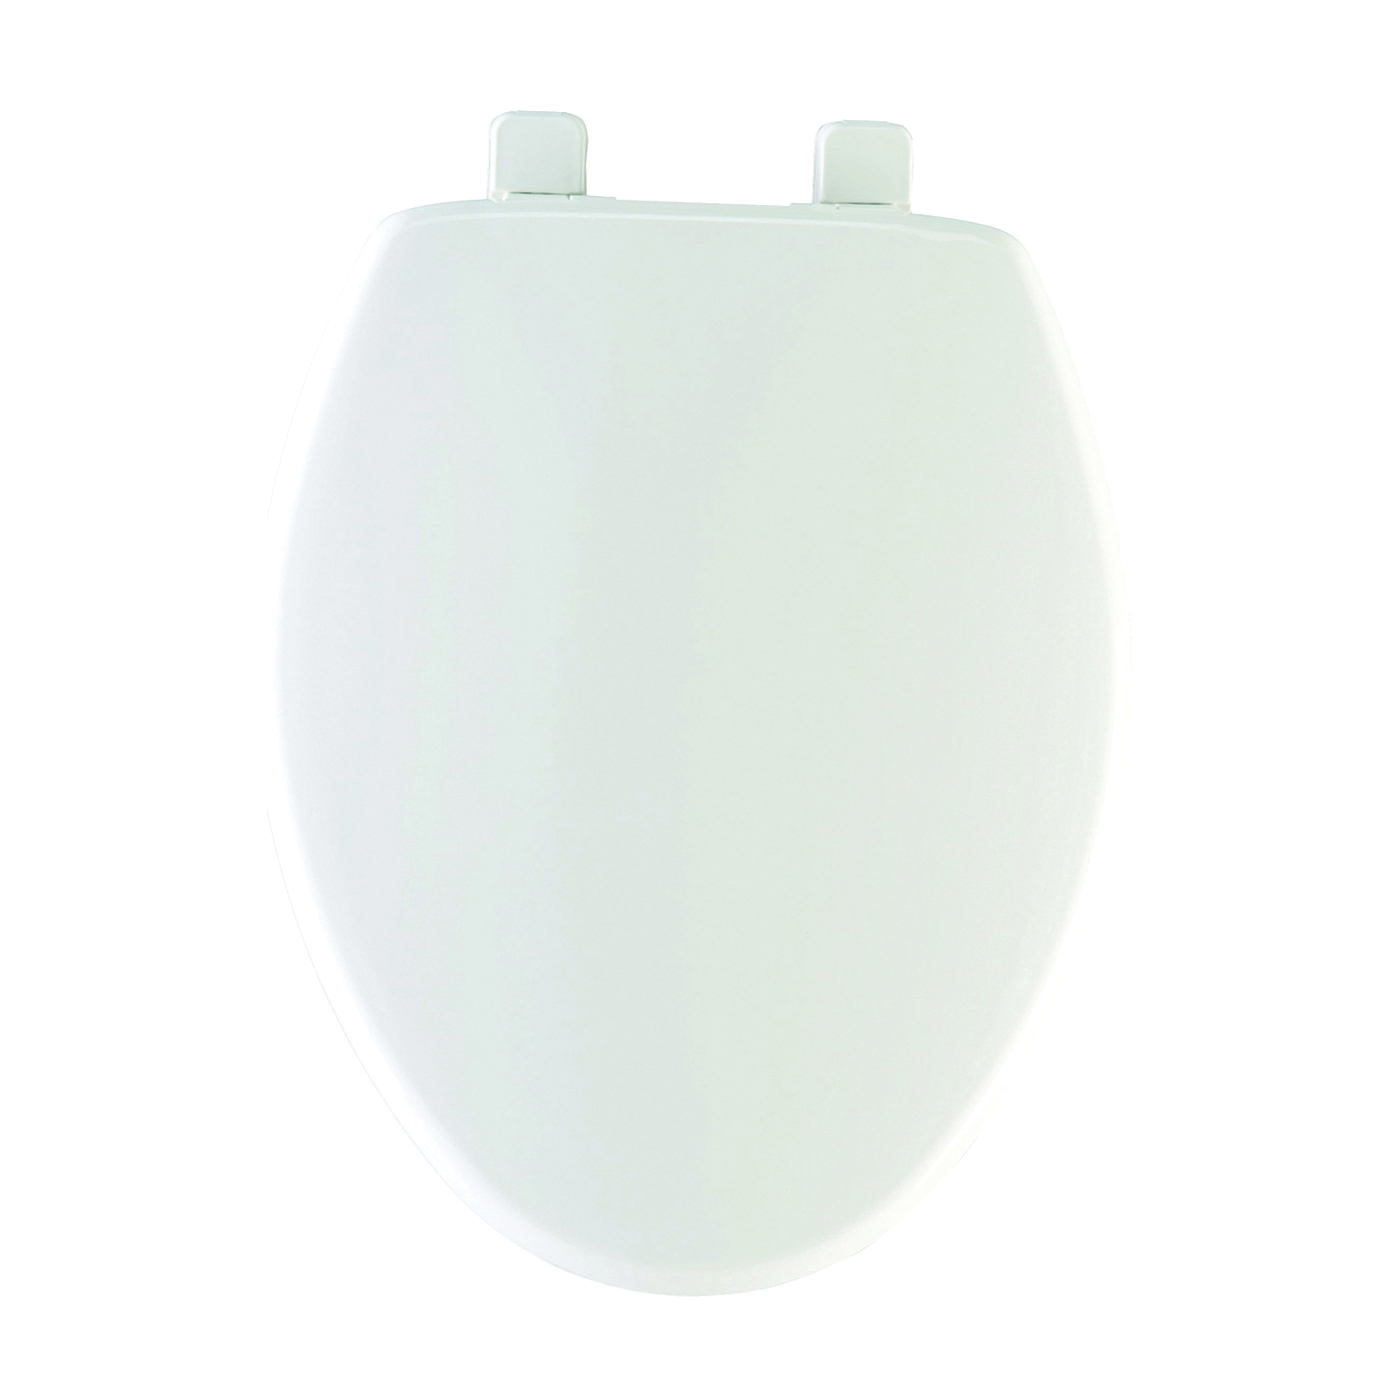 Picture of Mayfair 180SLOW000 Toilet Seat, Elongated, Plastic, White, Hex-Tite Hinge